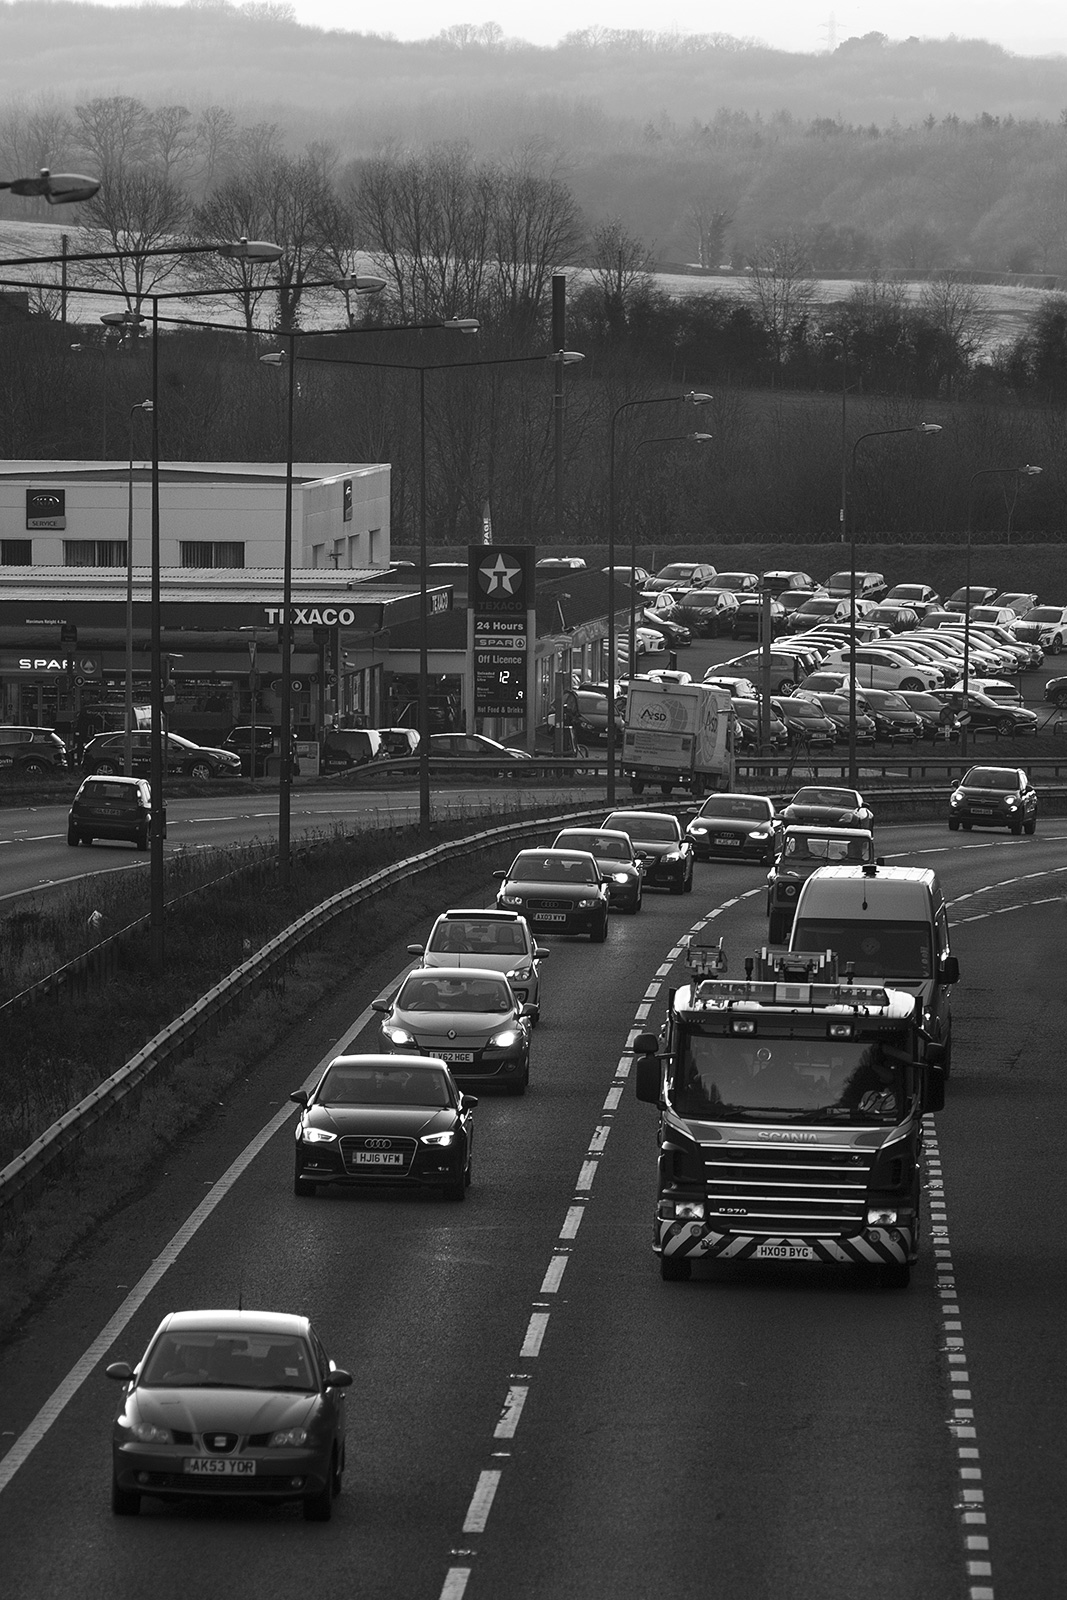 Cars and trucks on dual carriageway with Texaco garage filling station and parked cars in background, rural urban landscape portrait black and white photograph Pyecombe West Sussex UK ©P. Maton 2019 eyeteeth.net